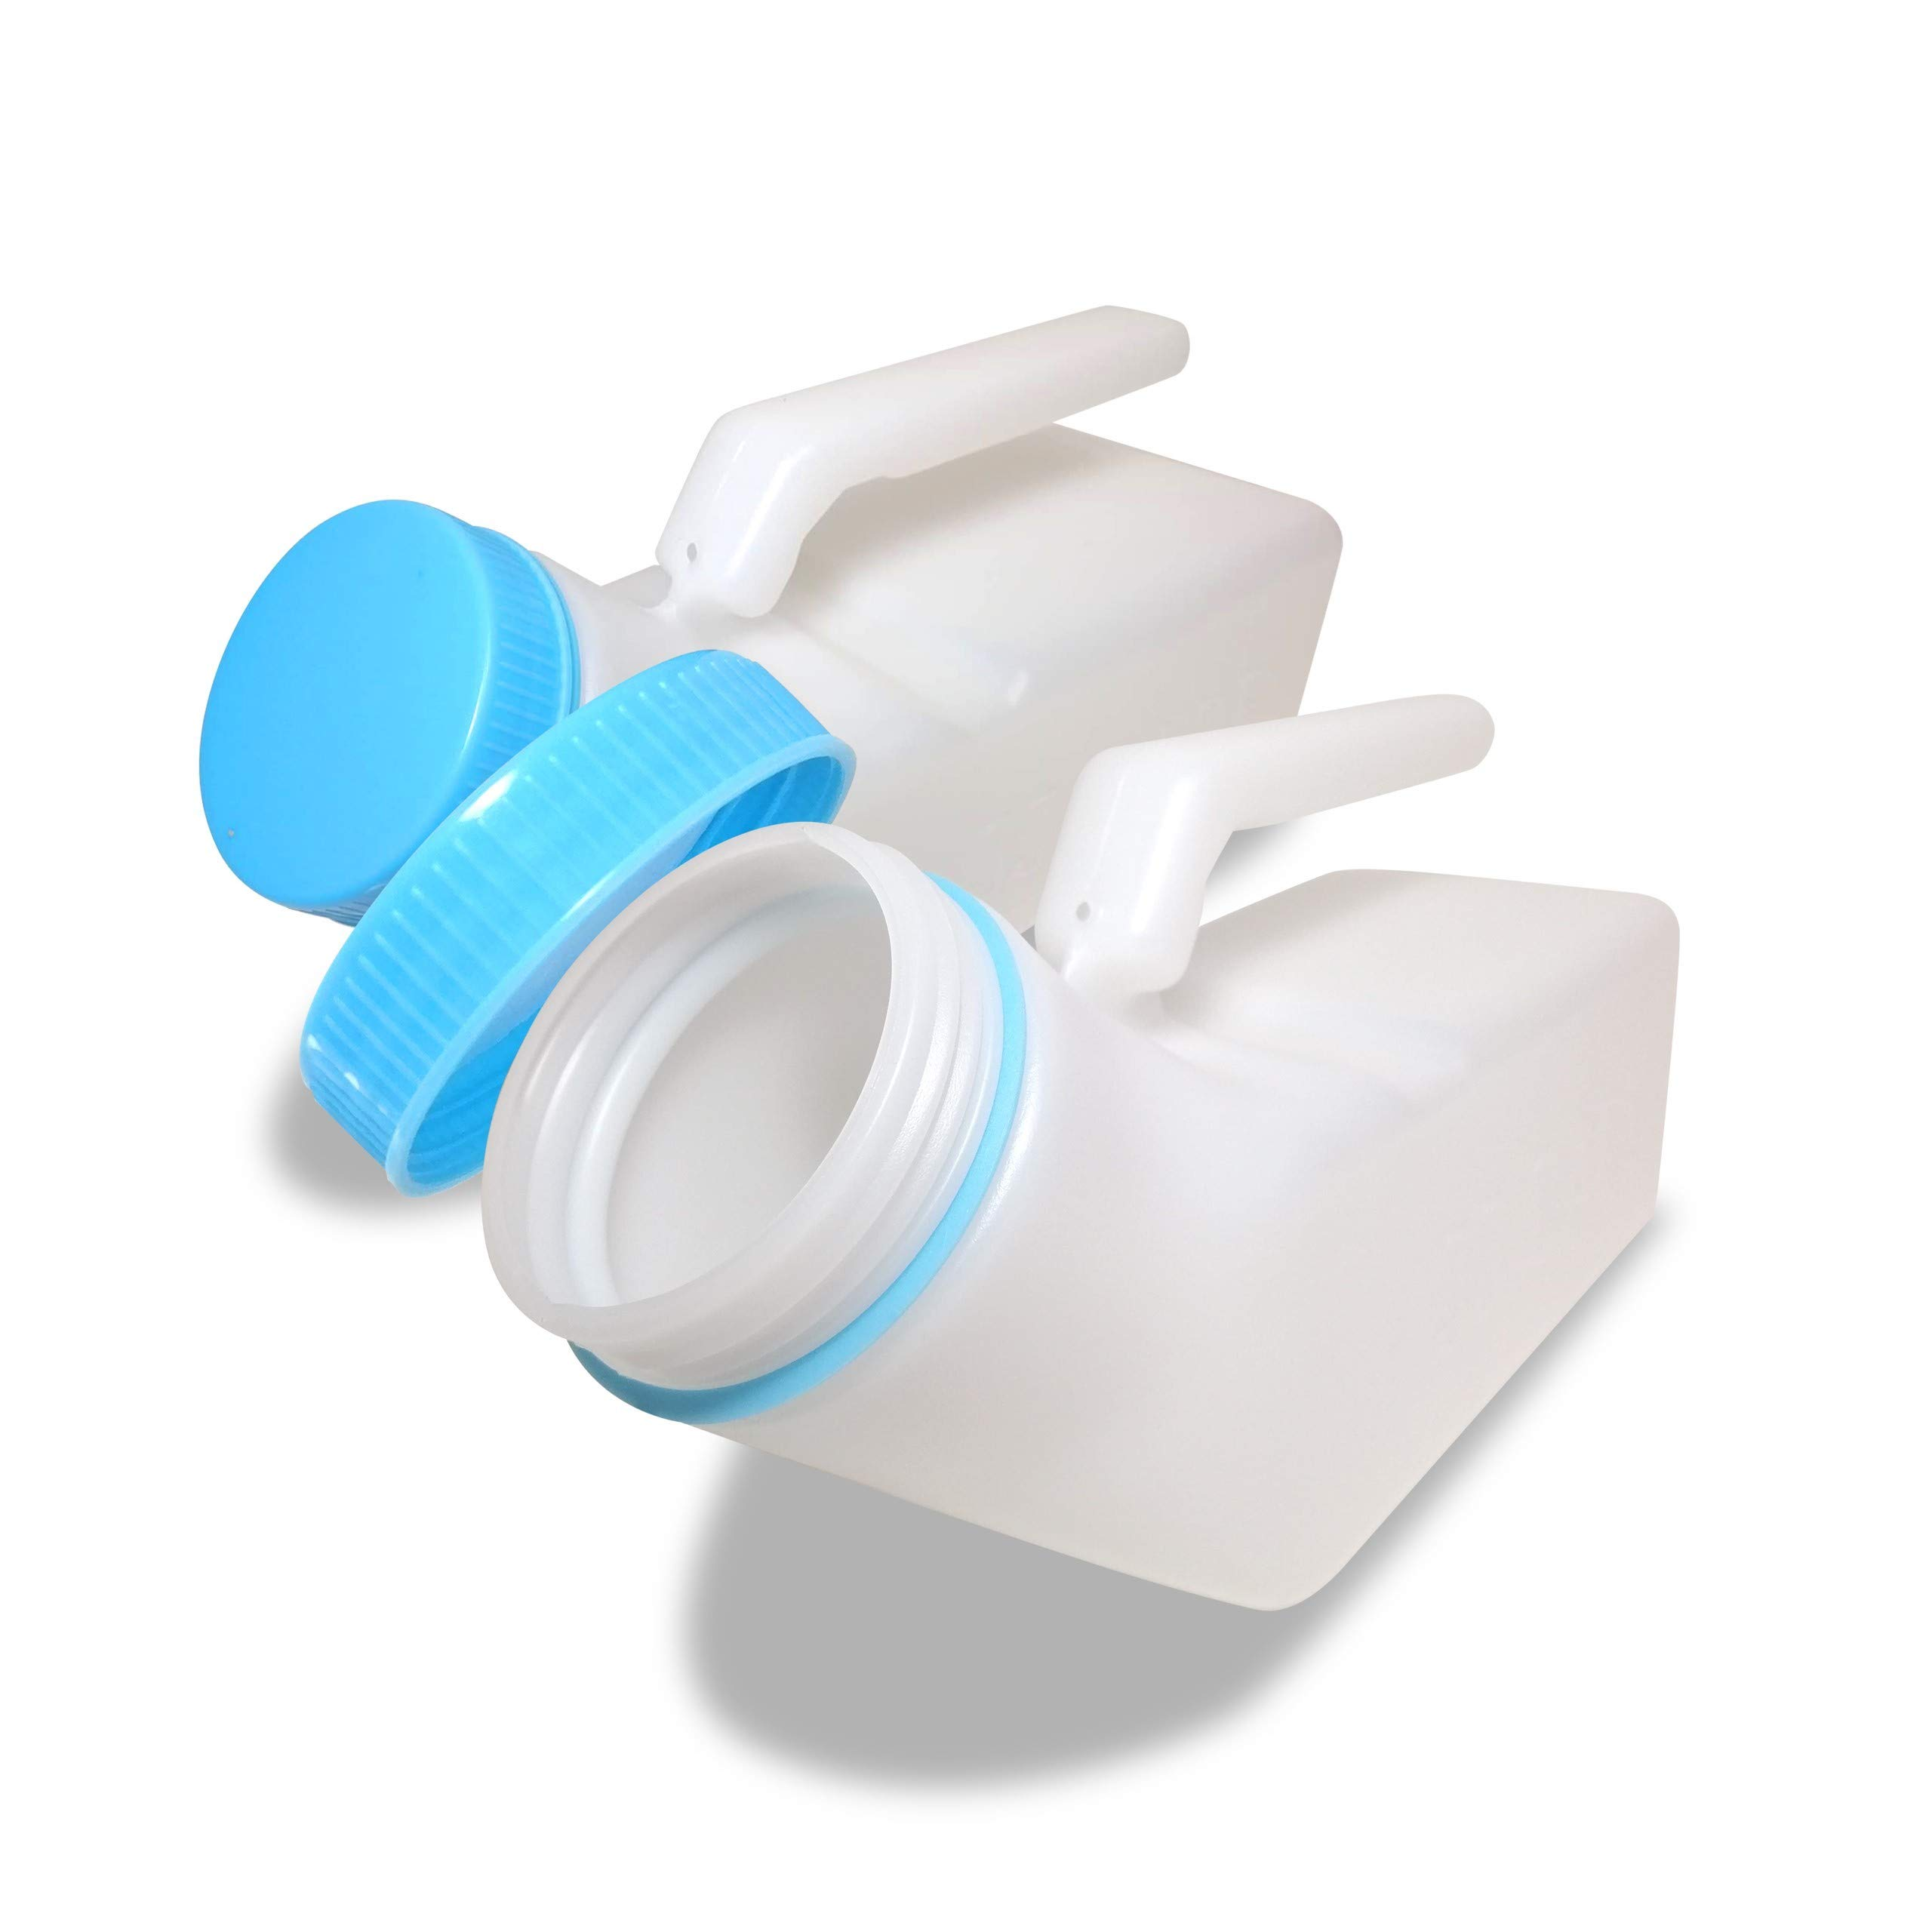 [Pack of 2] [Glow in The Dark] Spill Proof Urine Bottles for Men, Screw Cap Plastic Pee Holder, Portable Urinal, Urine Collection for Hospital, Incontinence, Elderly, Travel Bottle and Emergency by JJ CARE